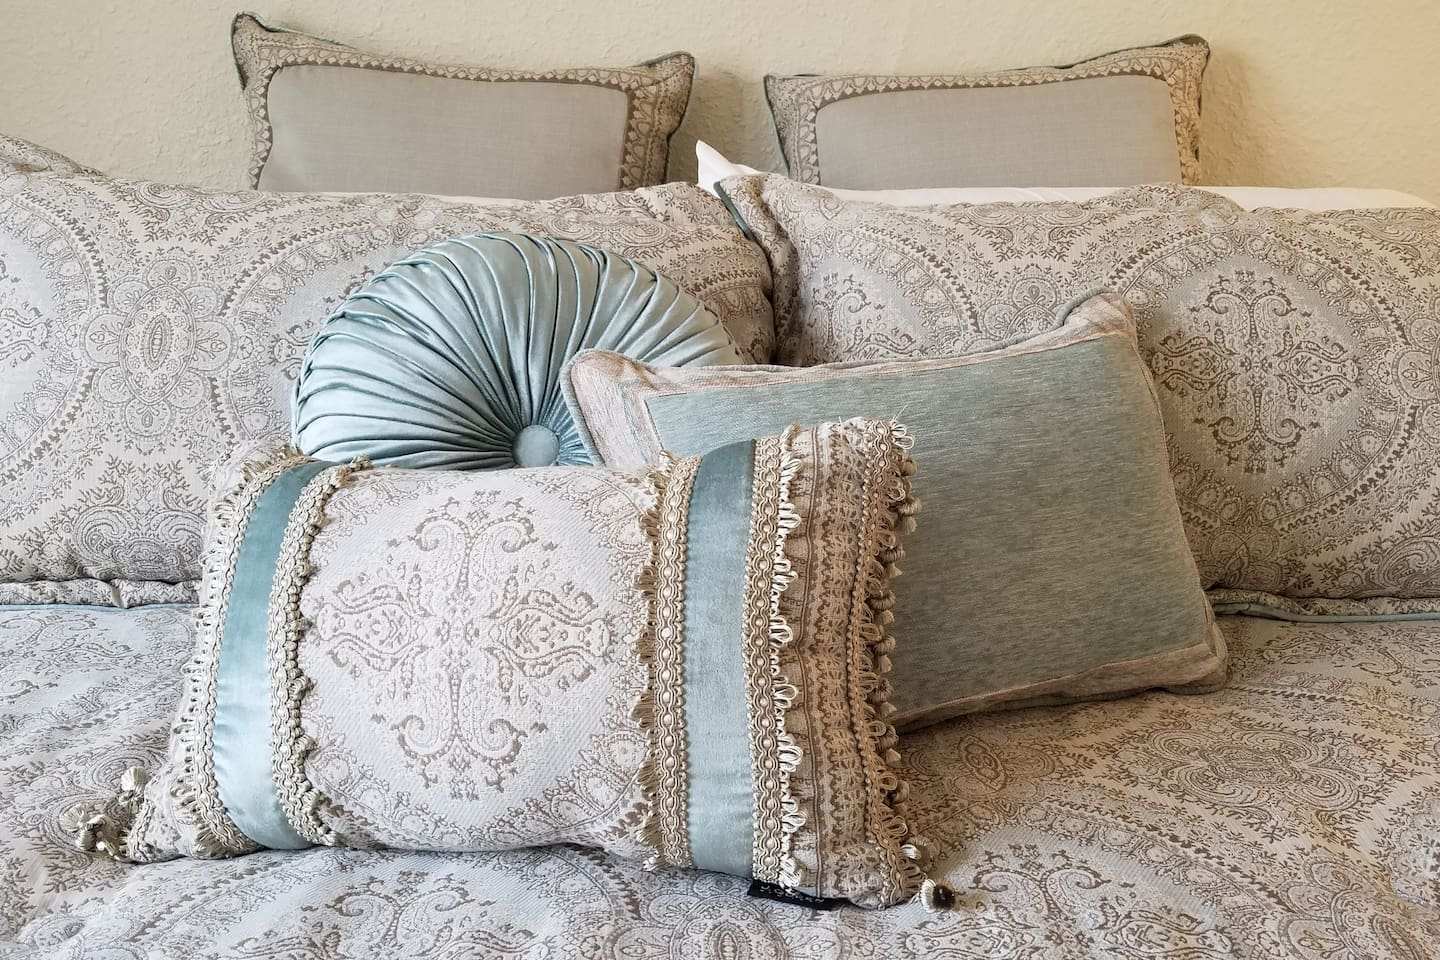 Take a load off in this King bed. It's so pretty you'll want to sleep with your eyes open!